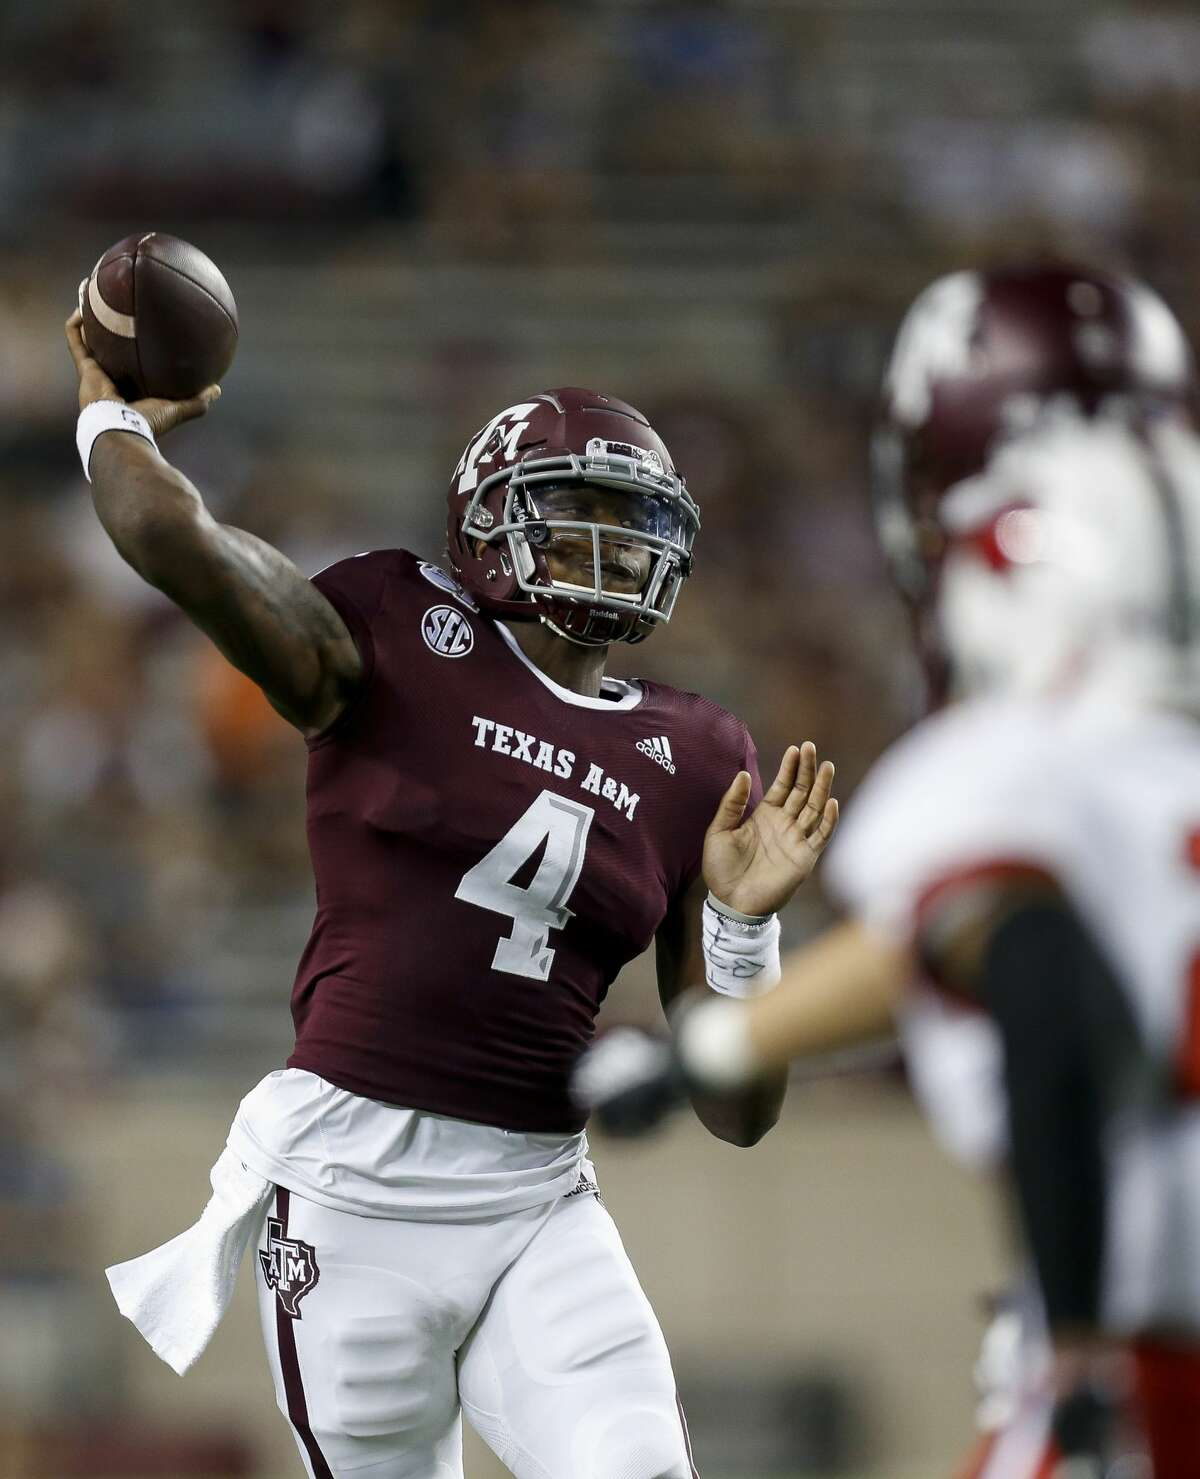 Texas A&M Aggies quarterback James Foster (4) throws the ball against the Lamar Cardinals during the fourth quarter of an NCAA game at Kyle Field Saturday, Sept. 14, 2019, in College Station, Texas. The Aggies won 62-3.